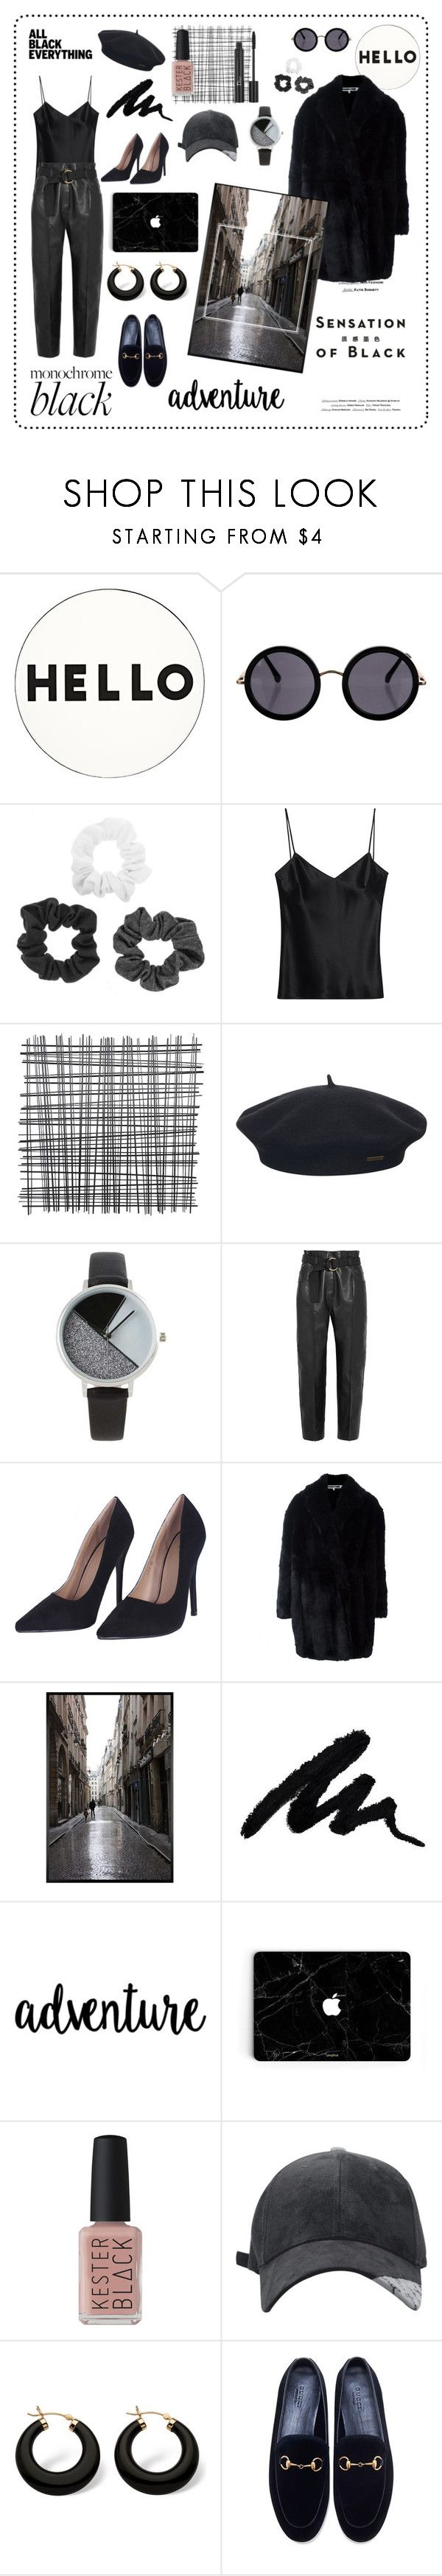 """Black and White"" by haleymariello ❤ liked on Polyvore featuring Lisa Perry, Vision, The Row, Galvan, Element, BKE, Petar Petrov, McQ by Alexander McQueen, Christian Dior and Pottery Barn"